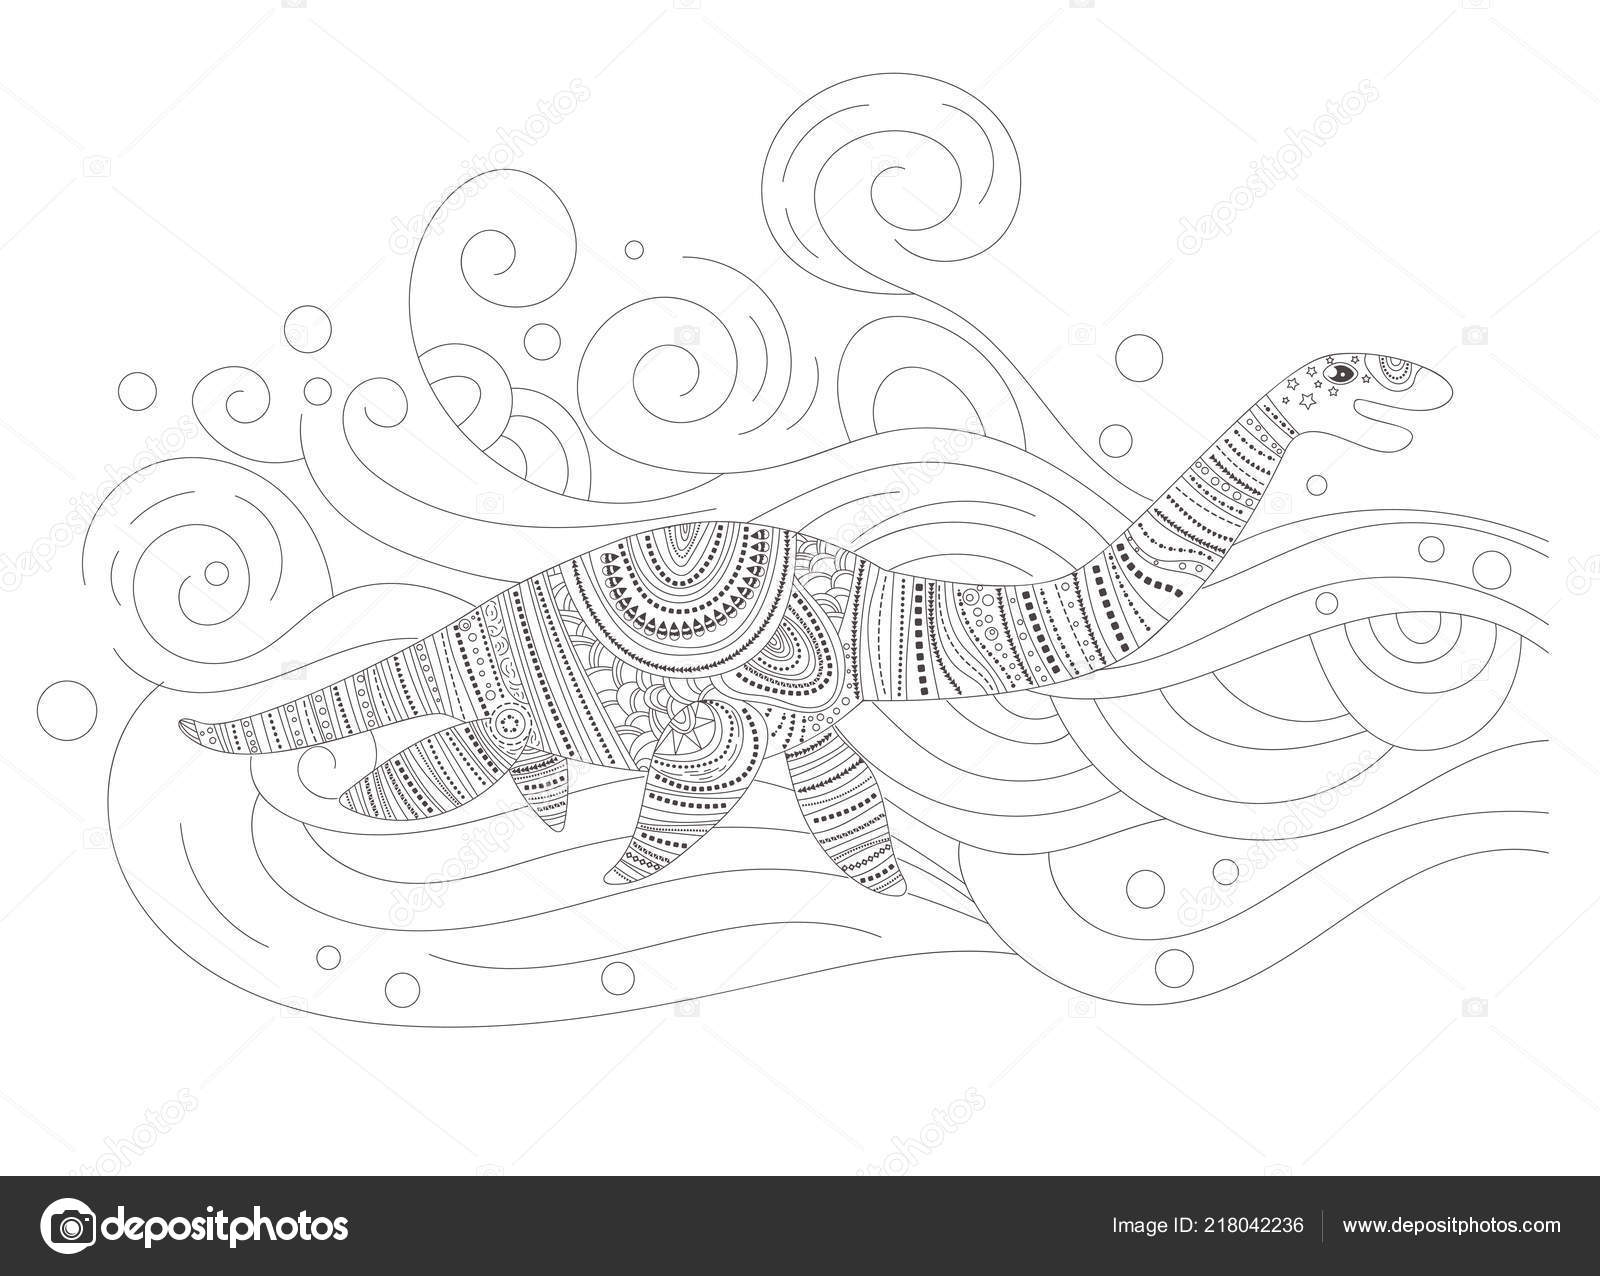 Aquatic coloring pages | Aquatic dinosaur Coloring page ...